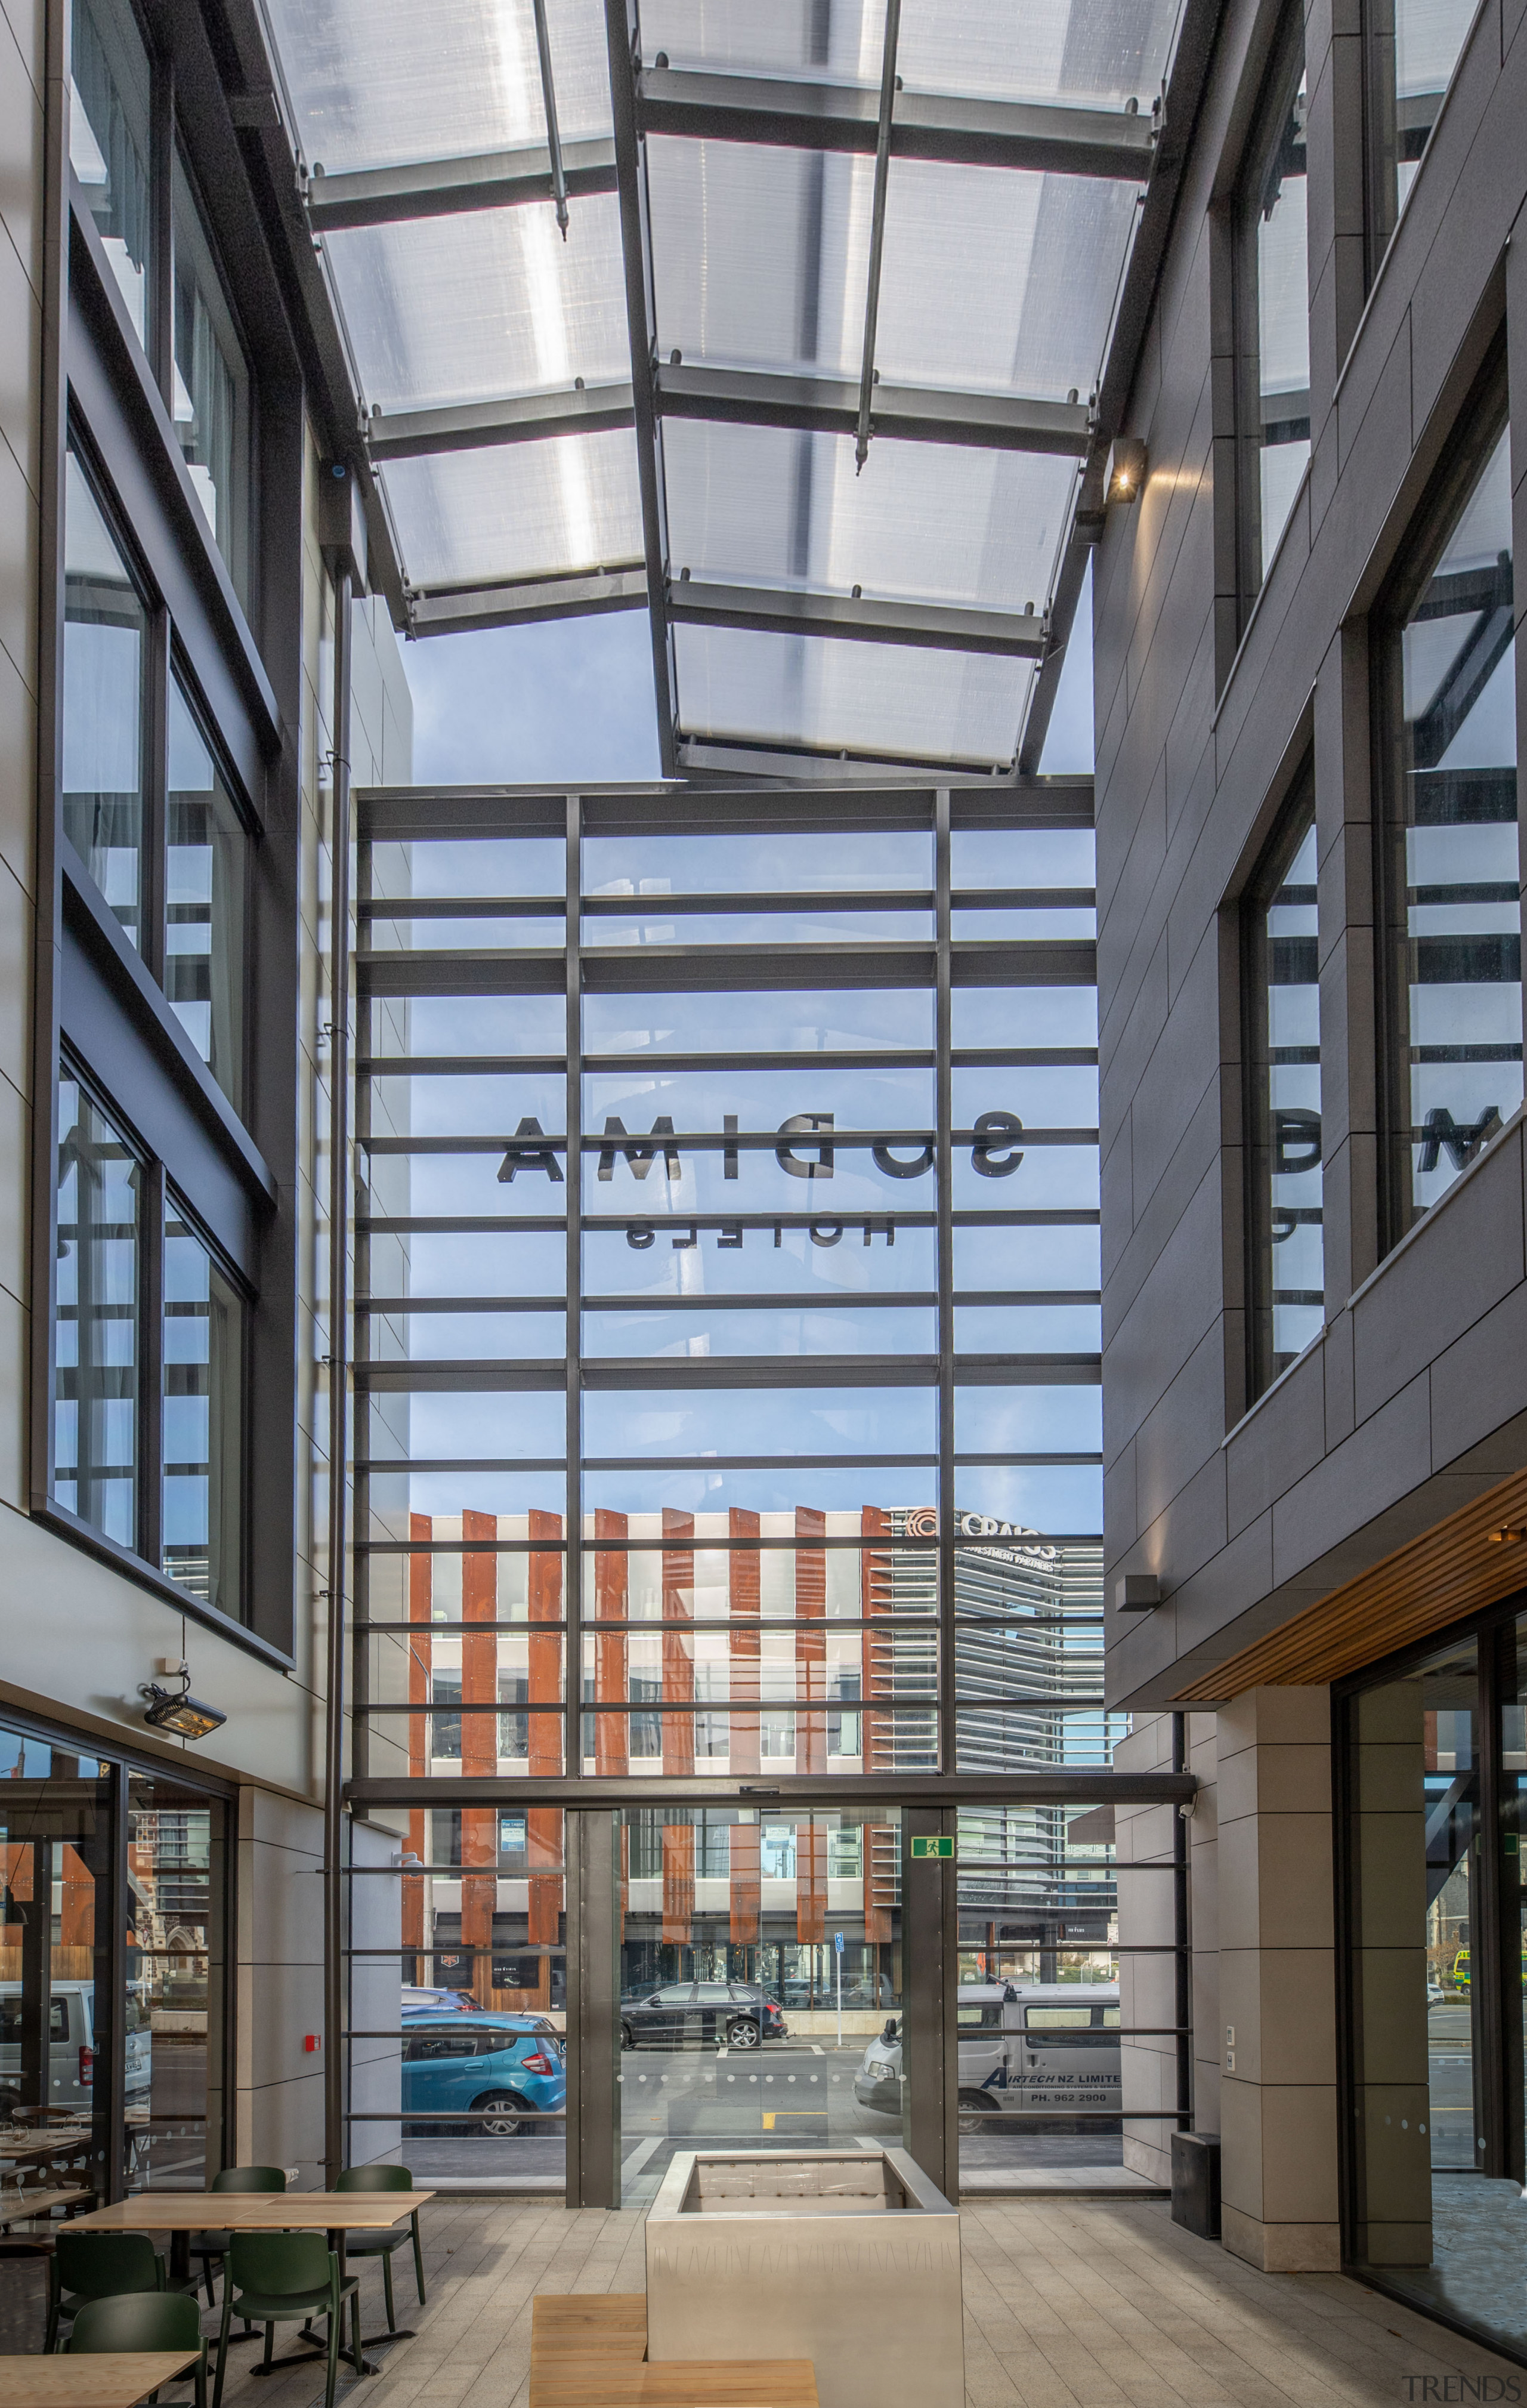 The Sudima Laneway atrium's two-canopy system keeps the architecture, building, Sudima Laneway, commercial building, mixed-use, Christchurch, Hotel, Office, Ignite Architects